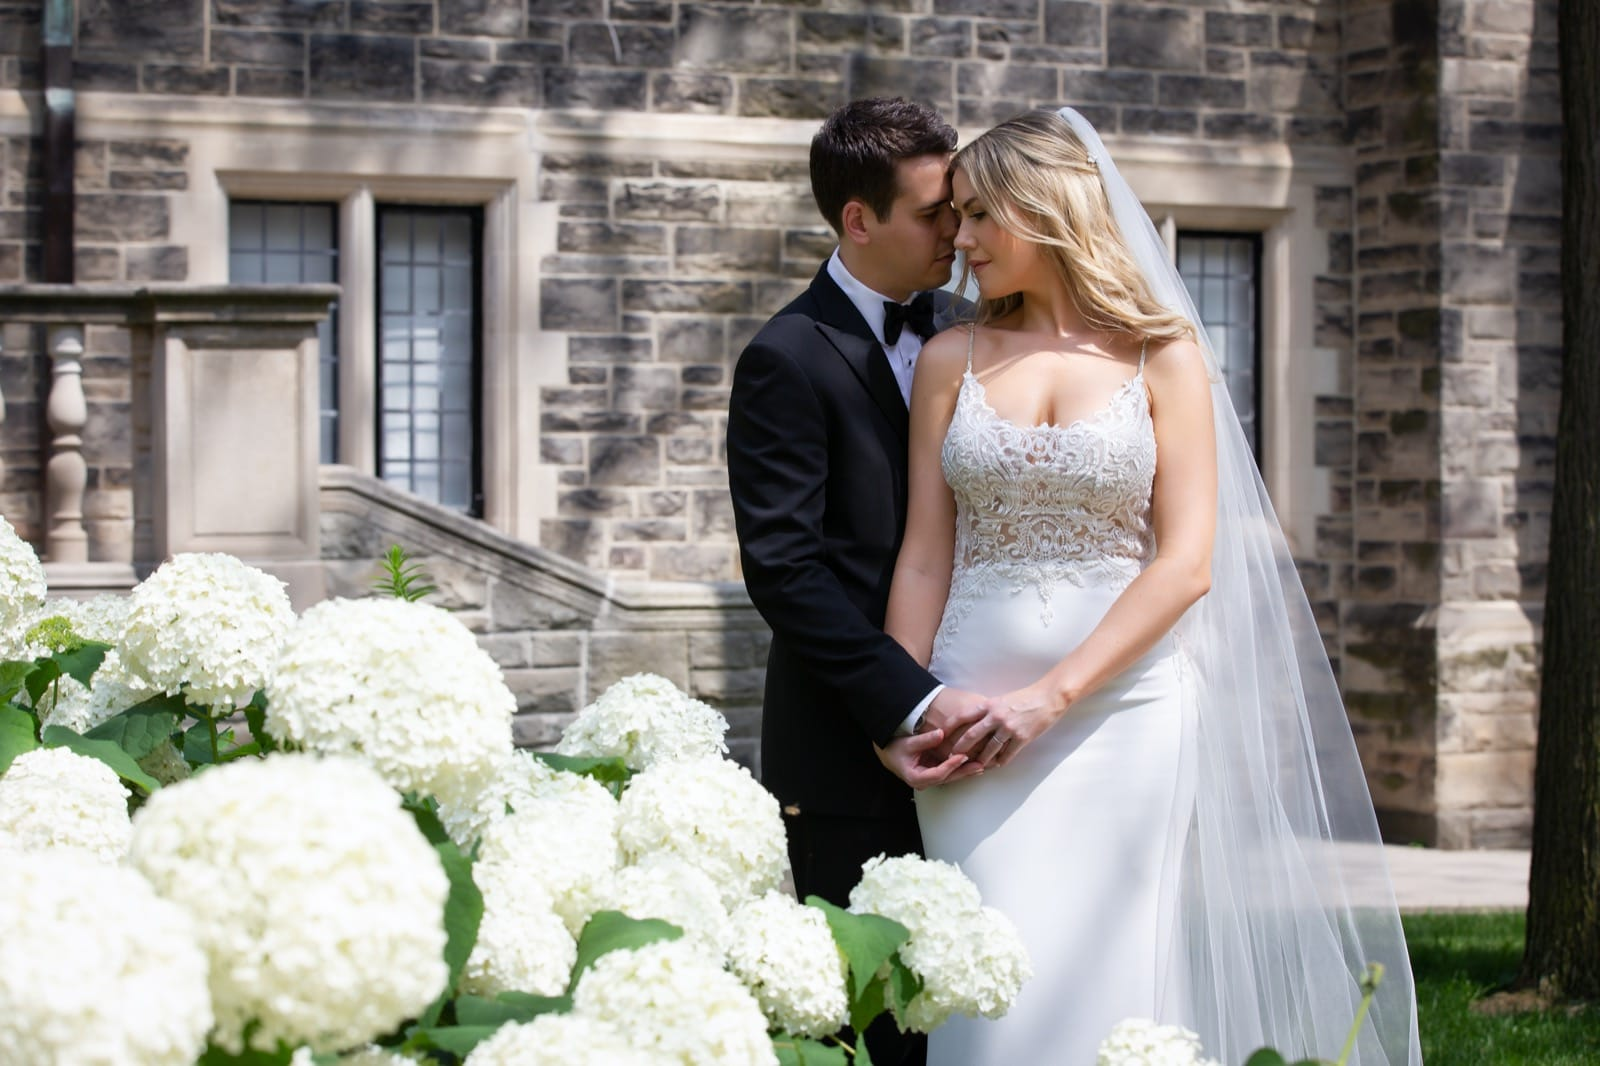 Wedding Photography at the Gardiner Museum in Toronto